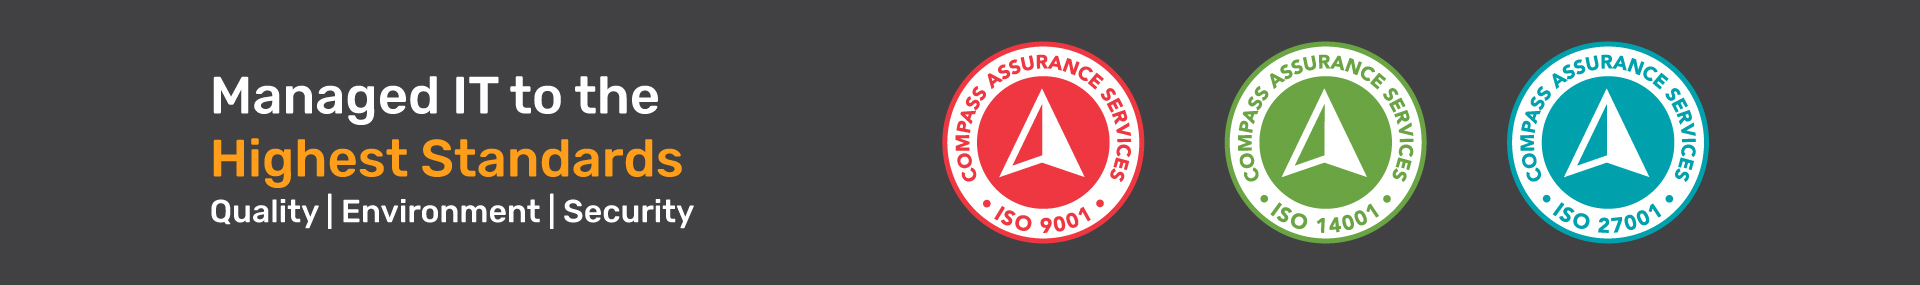 ISO 9001 Quality, 14001 Environment, 27001 Security